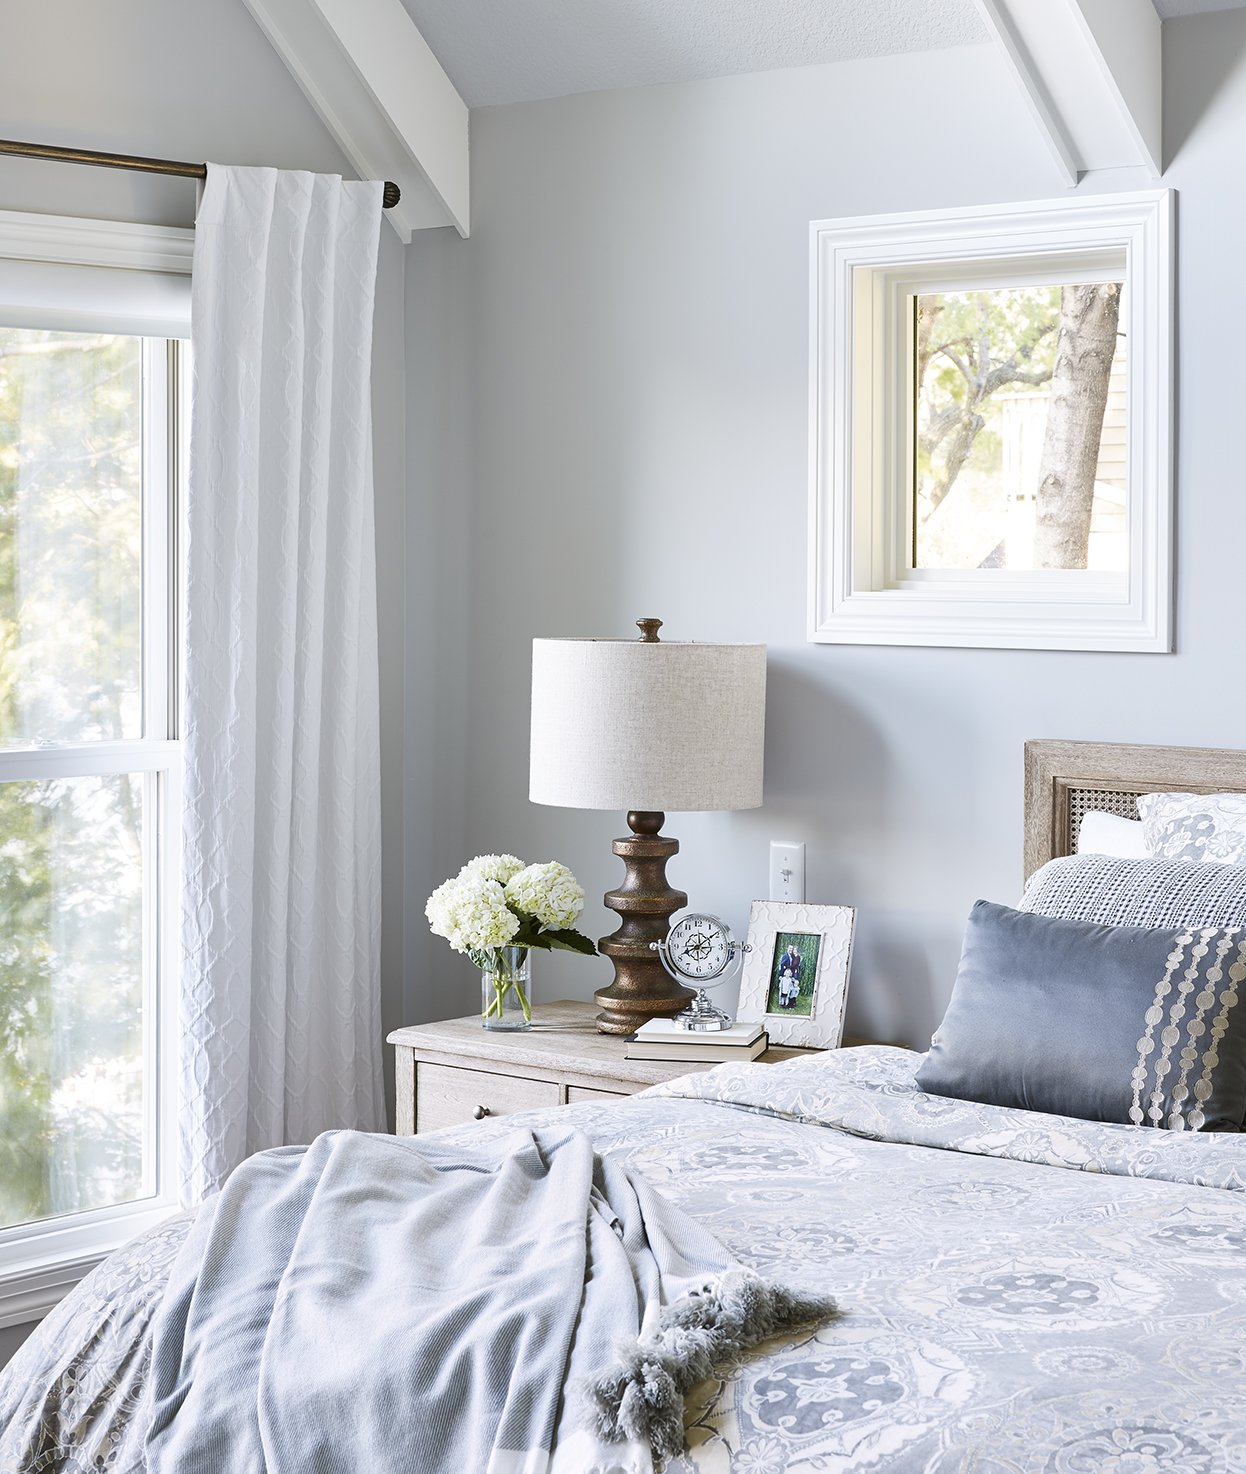 The simple masculine wood materials of the nightstand, headboard, and lamp pair seamlessly with the more feminine blue bedding in this spacious master bedroom. / Design by Sneak Peek Design